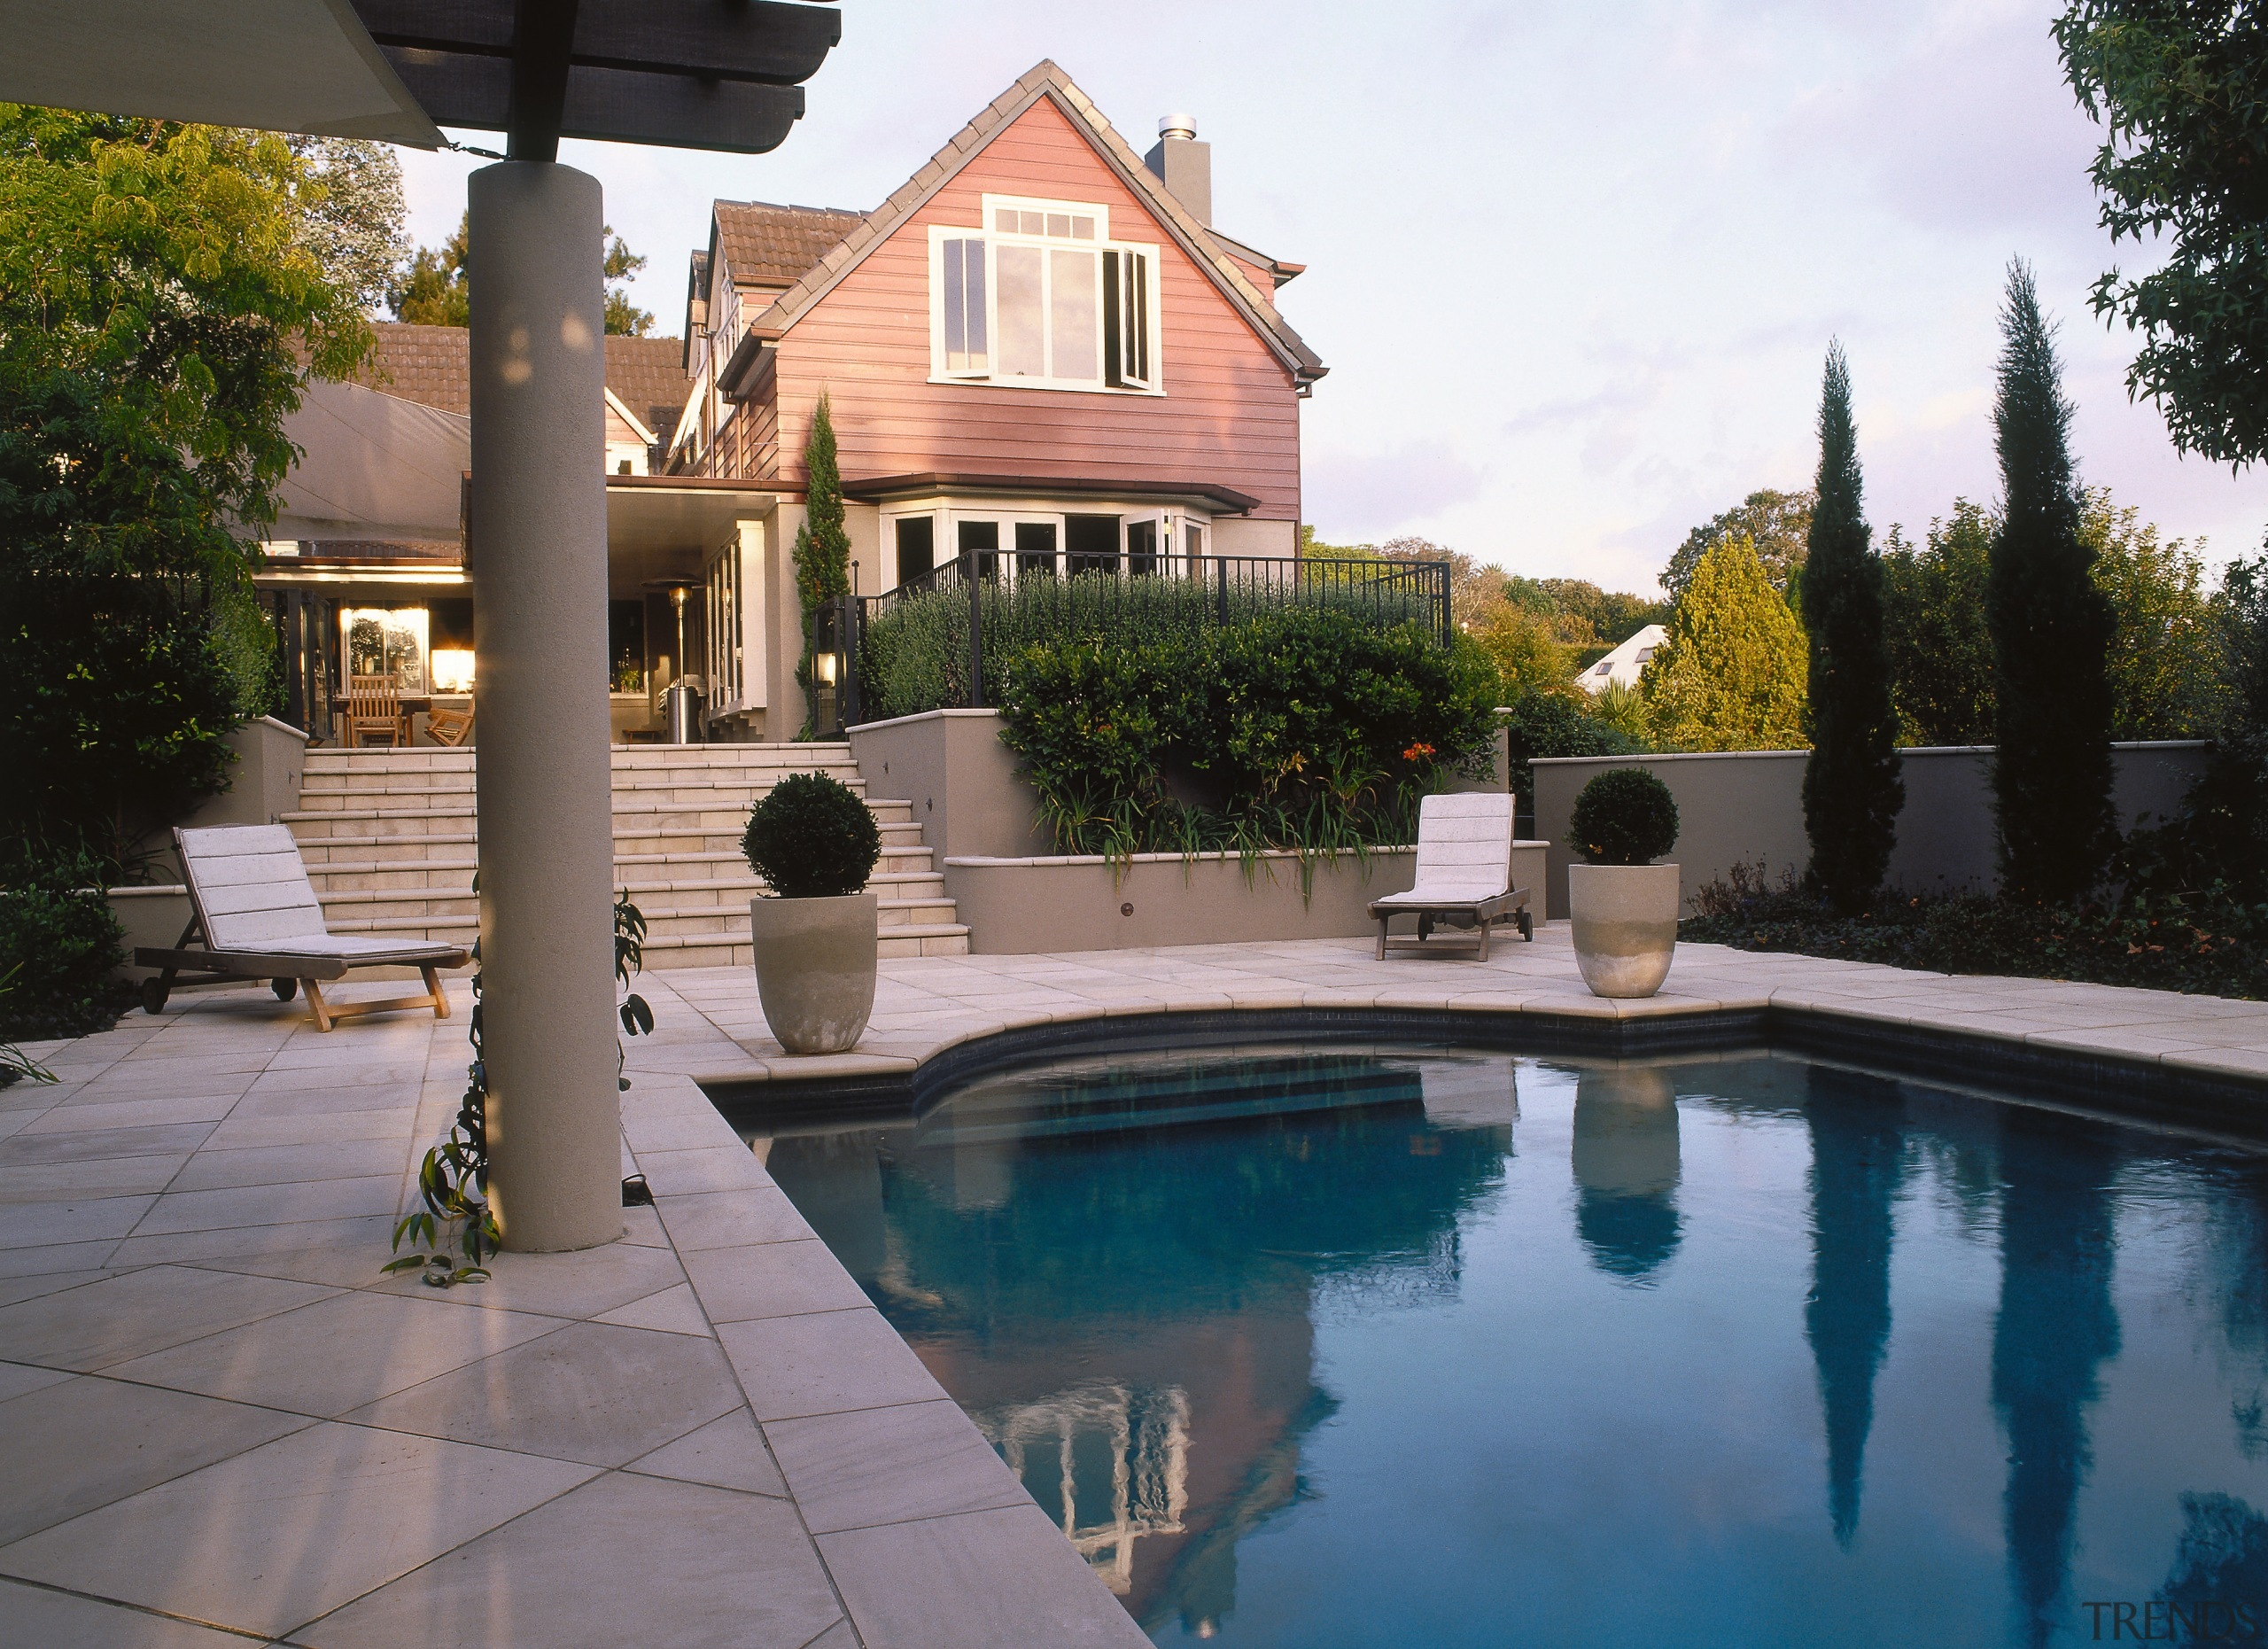 A view of some paving from Original Stone. backyard, estate, home, house, outdoor structure, patio, property, real estate, residential area, swimming pool, villa, yard, gray